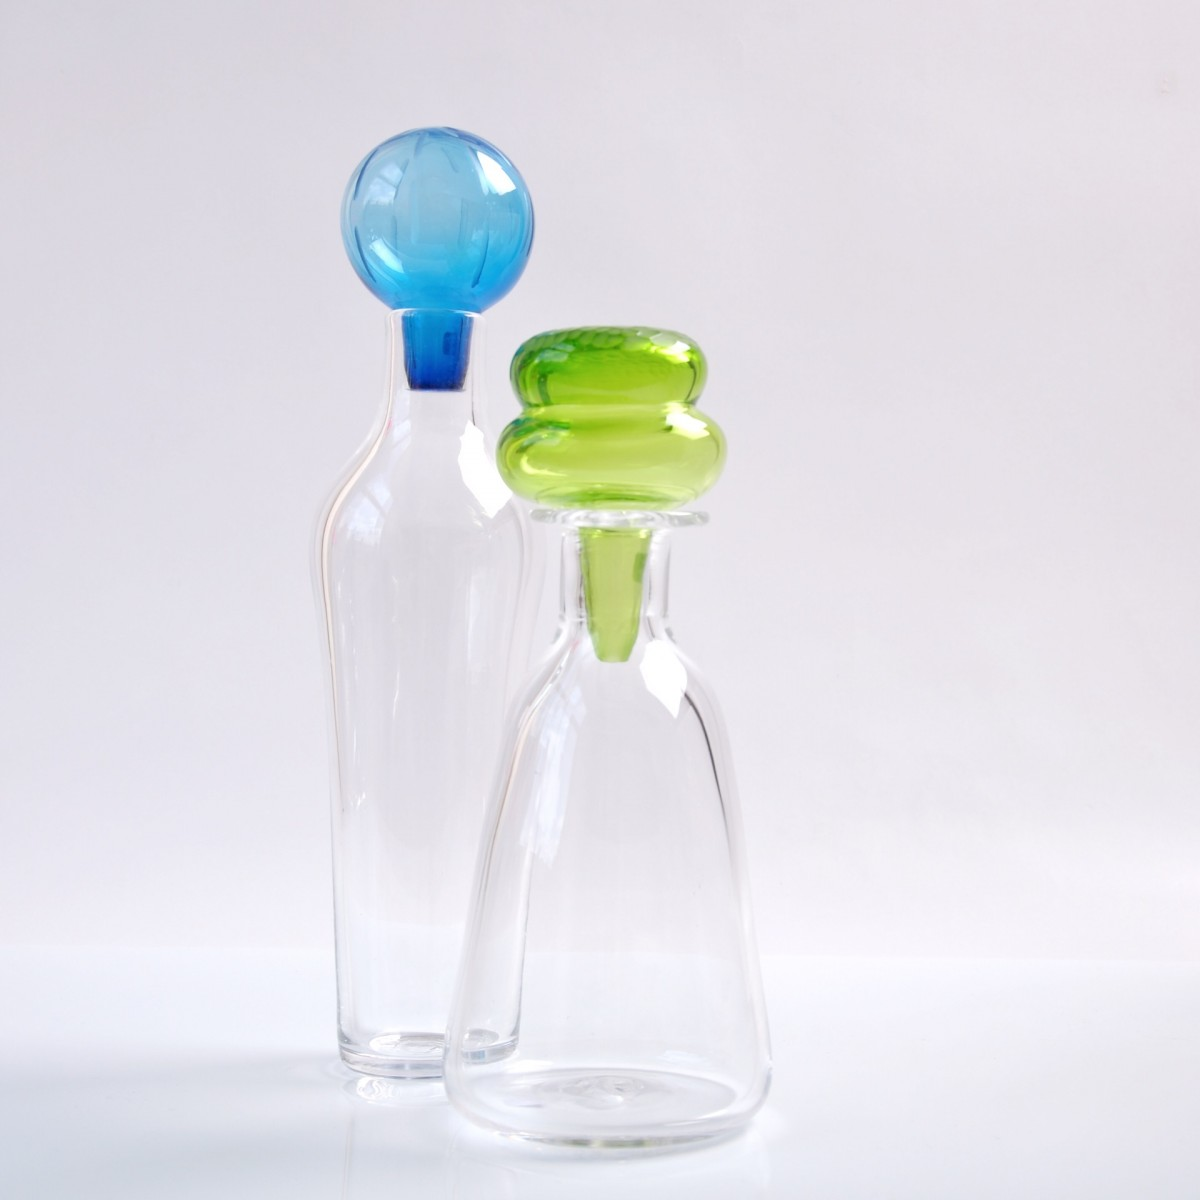 Two clear glass bottles with coloured stoppers